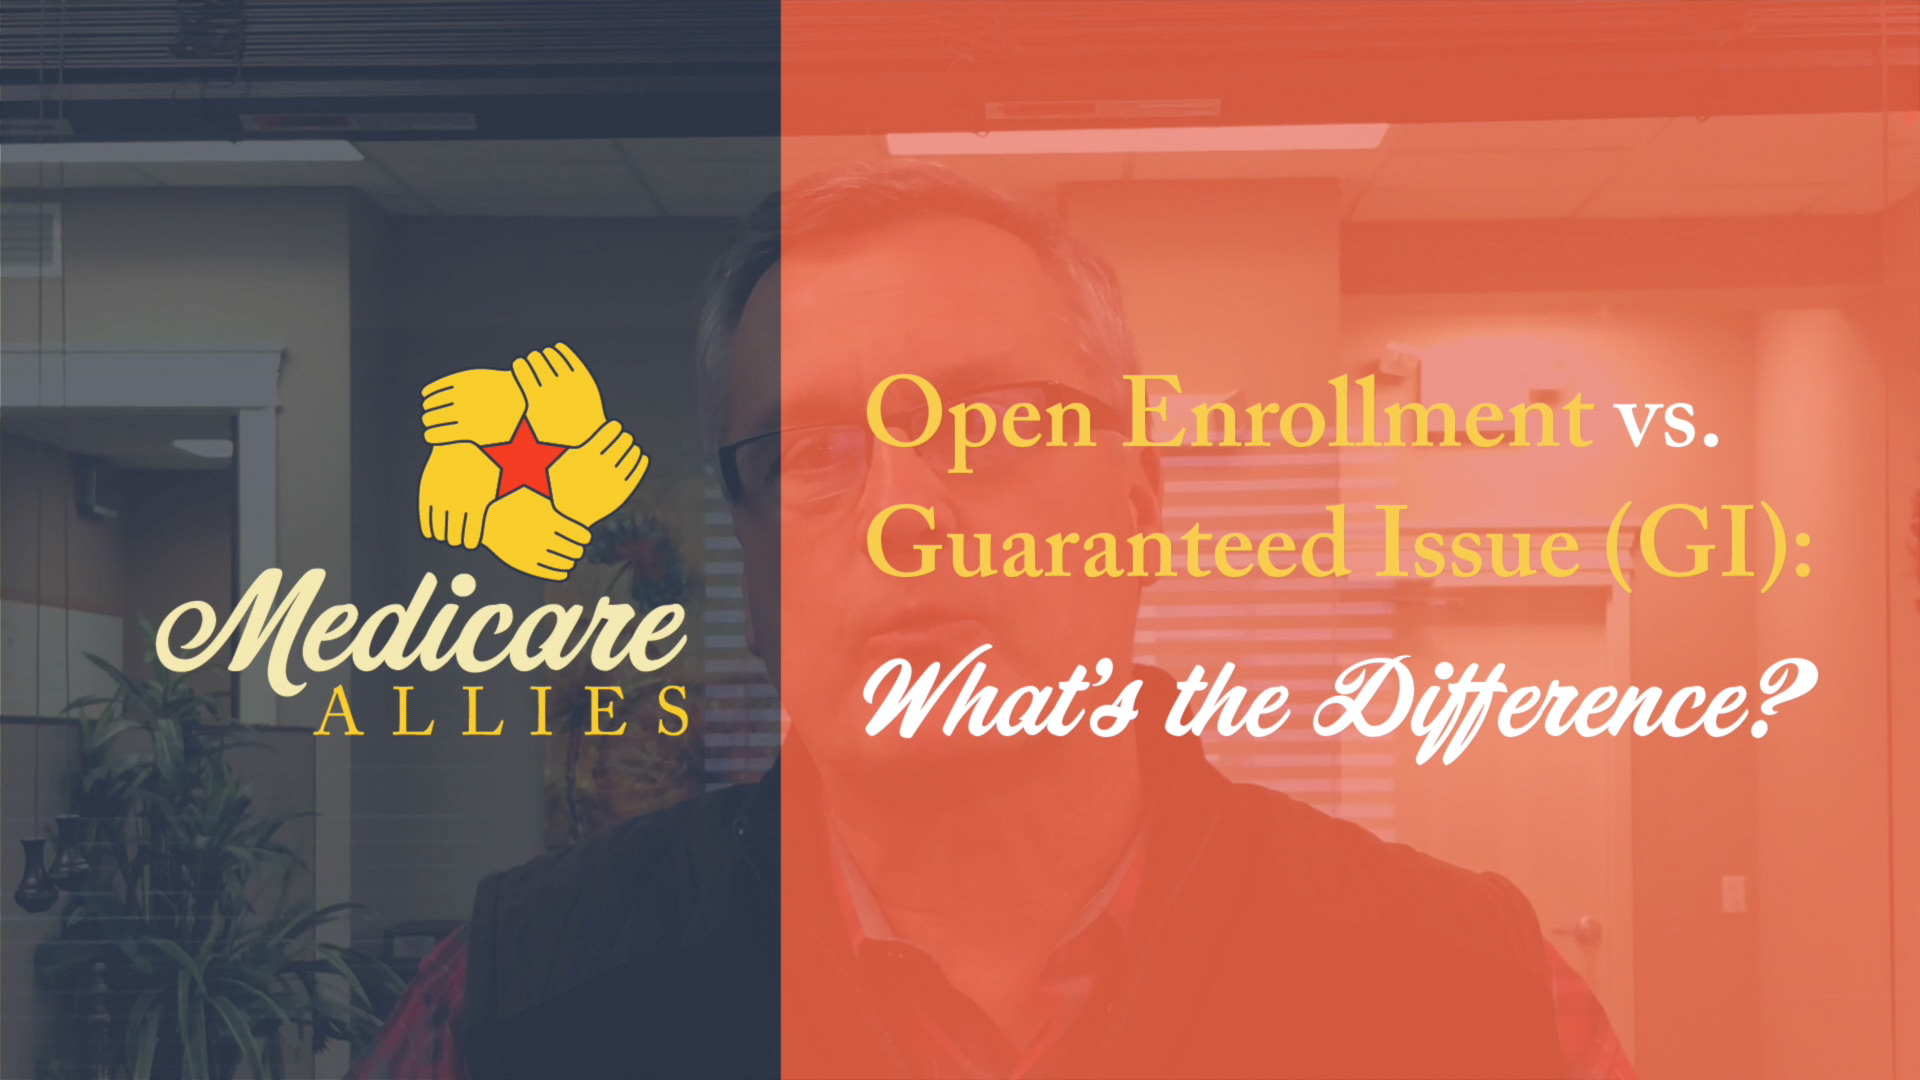 Open Enrollment vs. Guaranteed Issue (GI): What's the Difference?